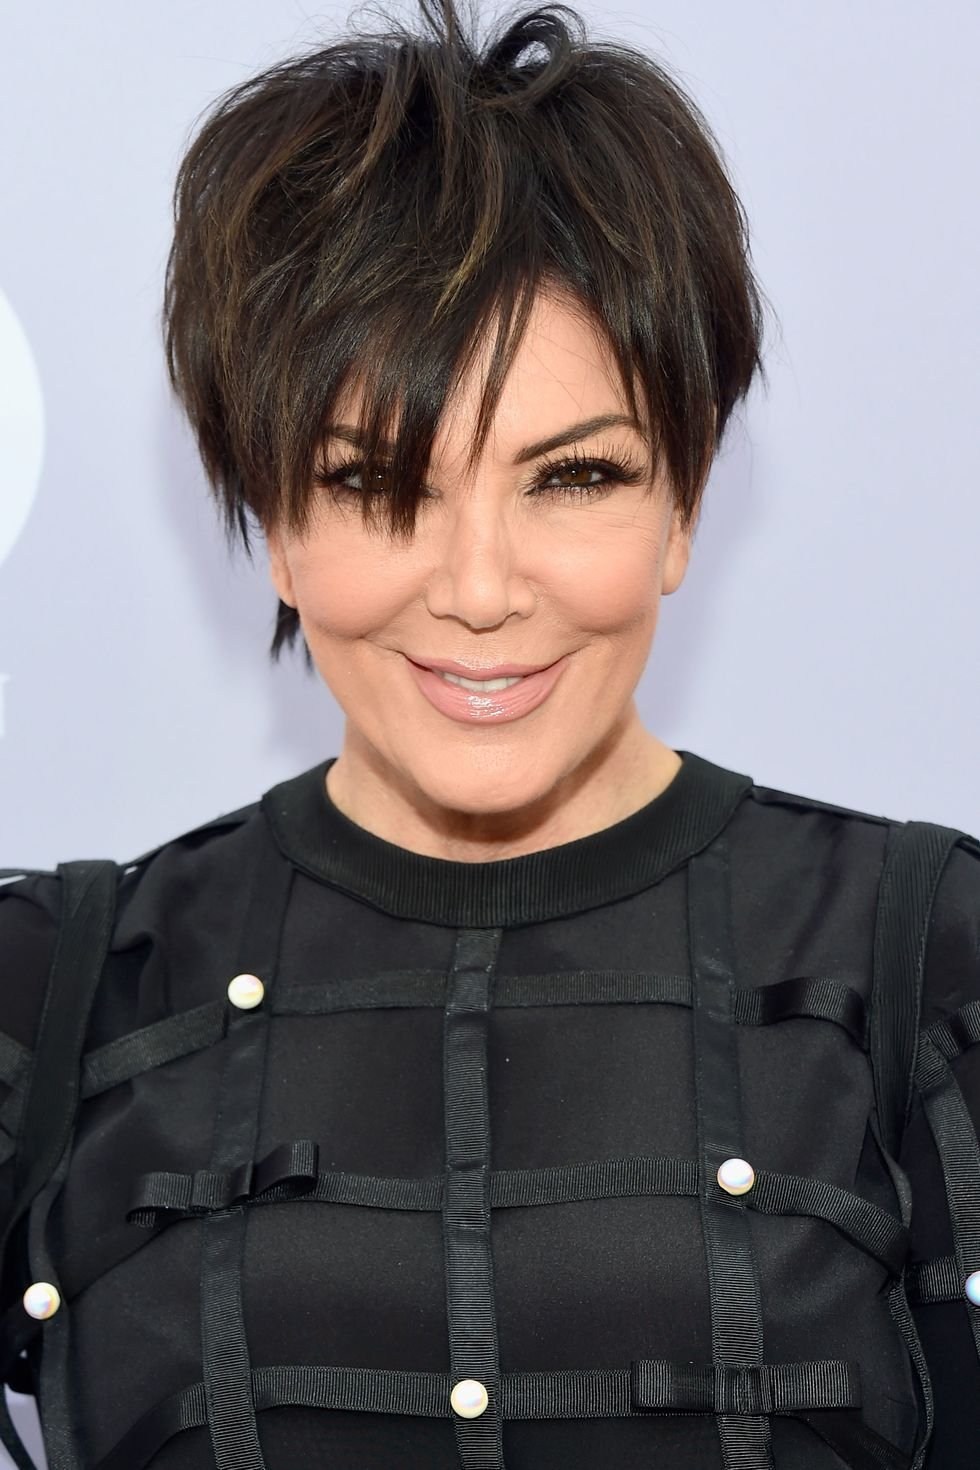 43+ Hairstyles that make you look younger over 60 ideas in 2021